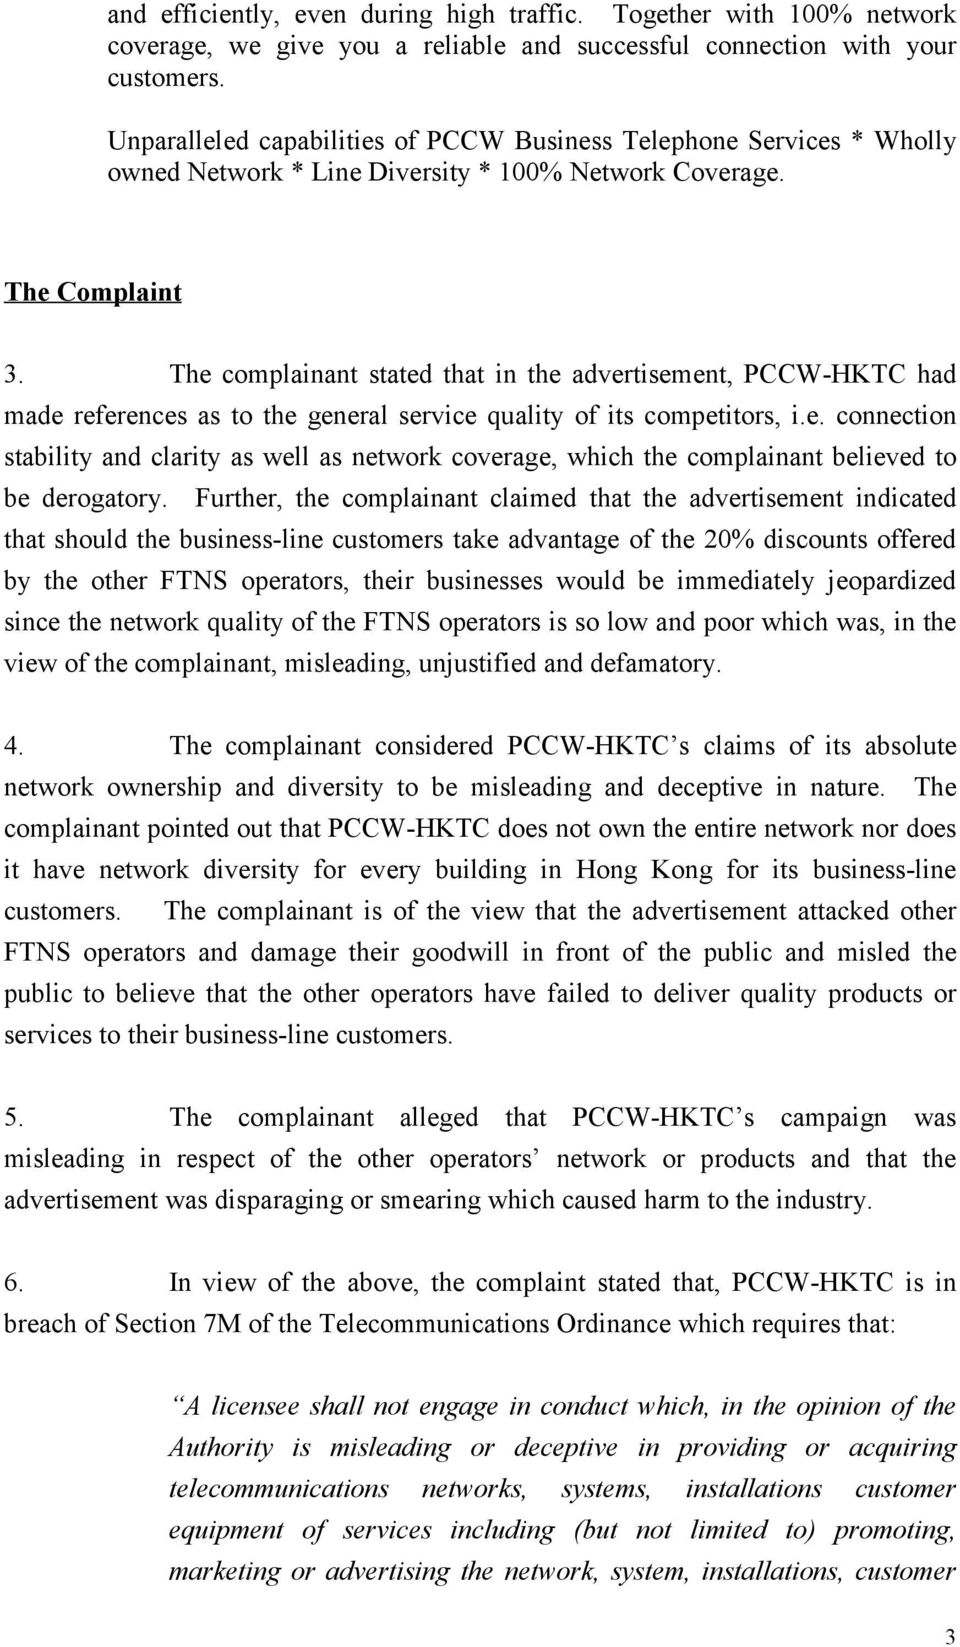 The complainant stated that in the advertisement, PCCW-HKTC had made references as to the general service quality of its competitors, i.e. connection stability and clarity as well as network coverage, which the complainant believed to be derogatory.